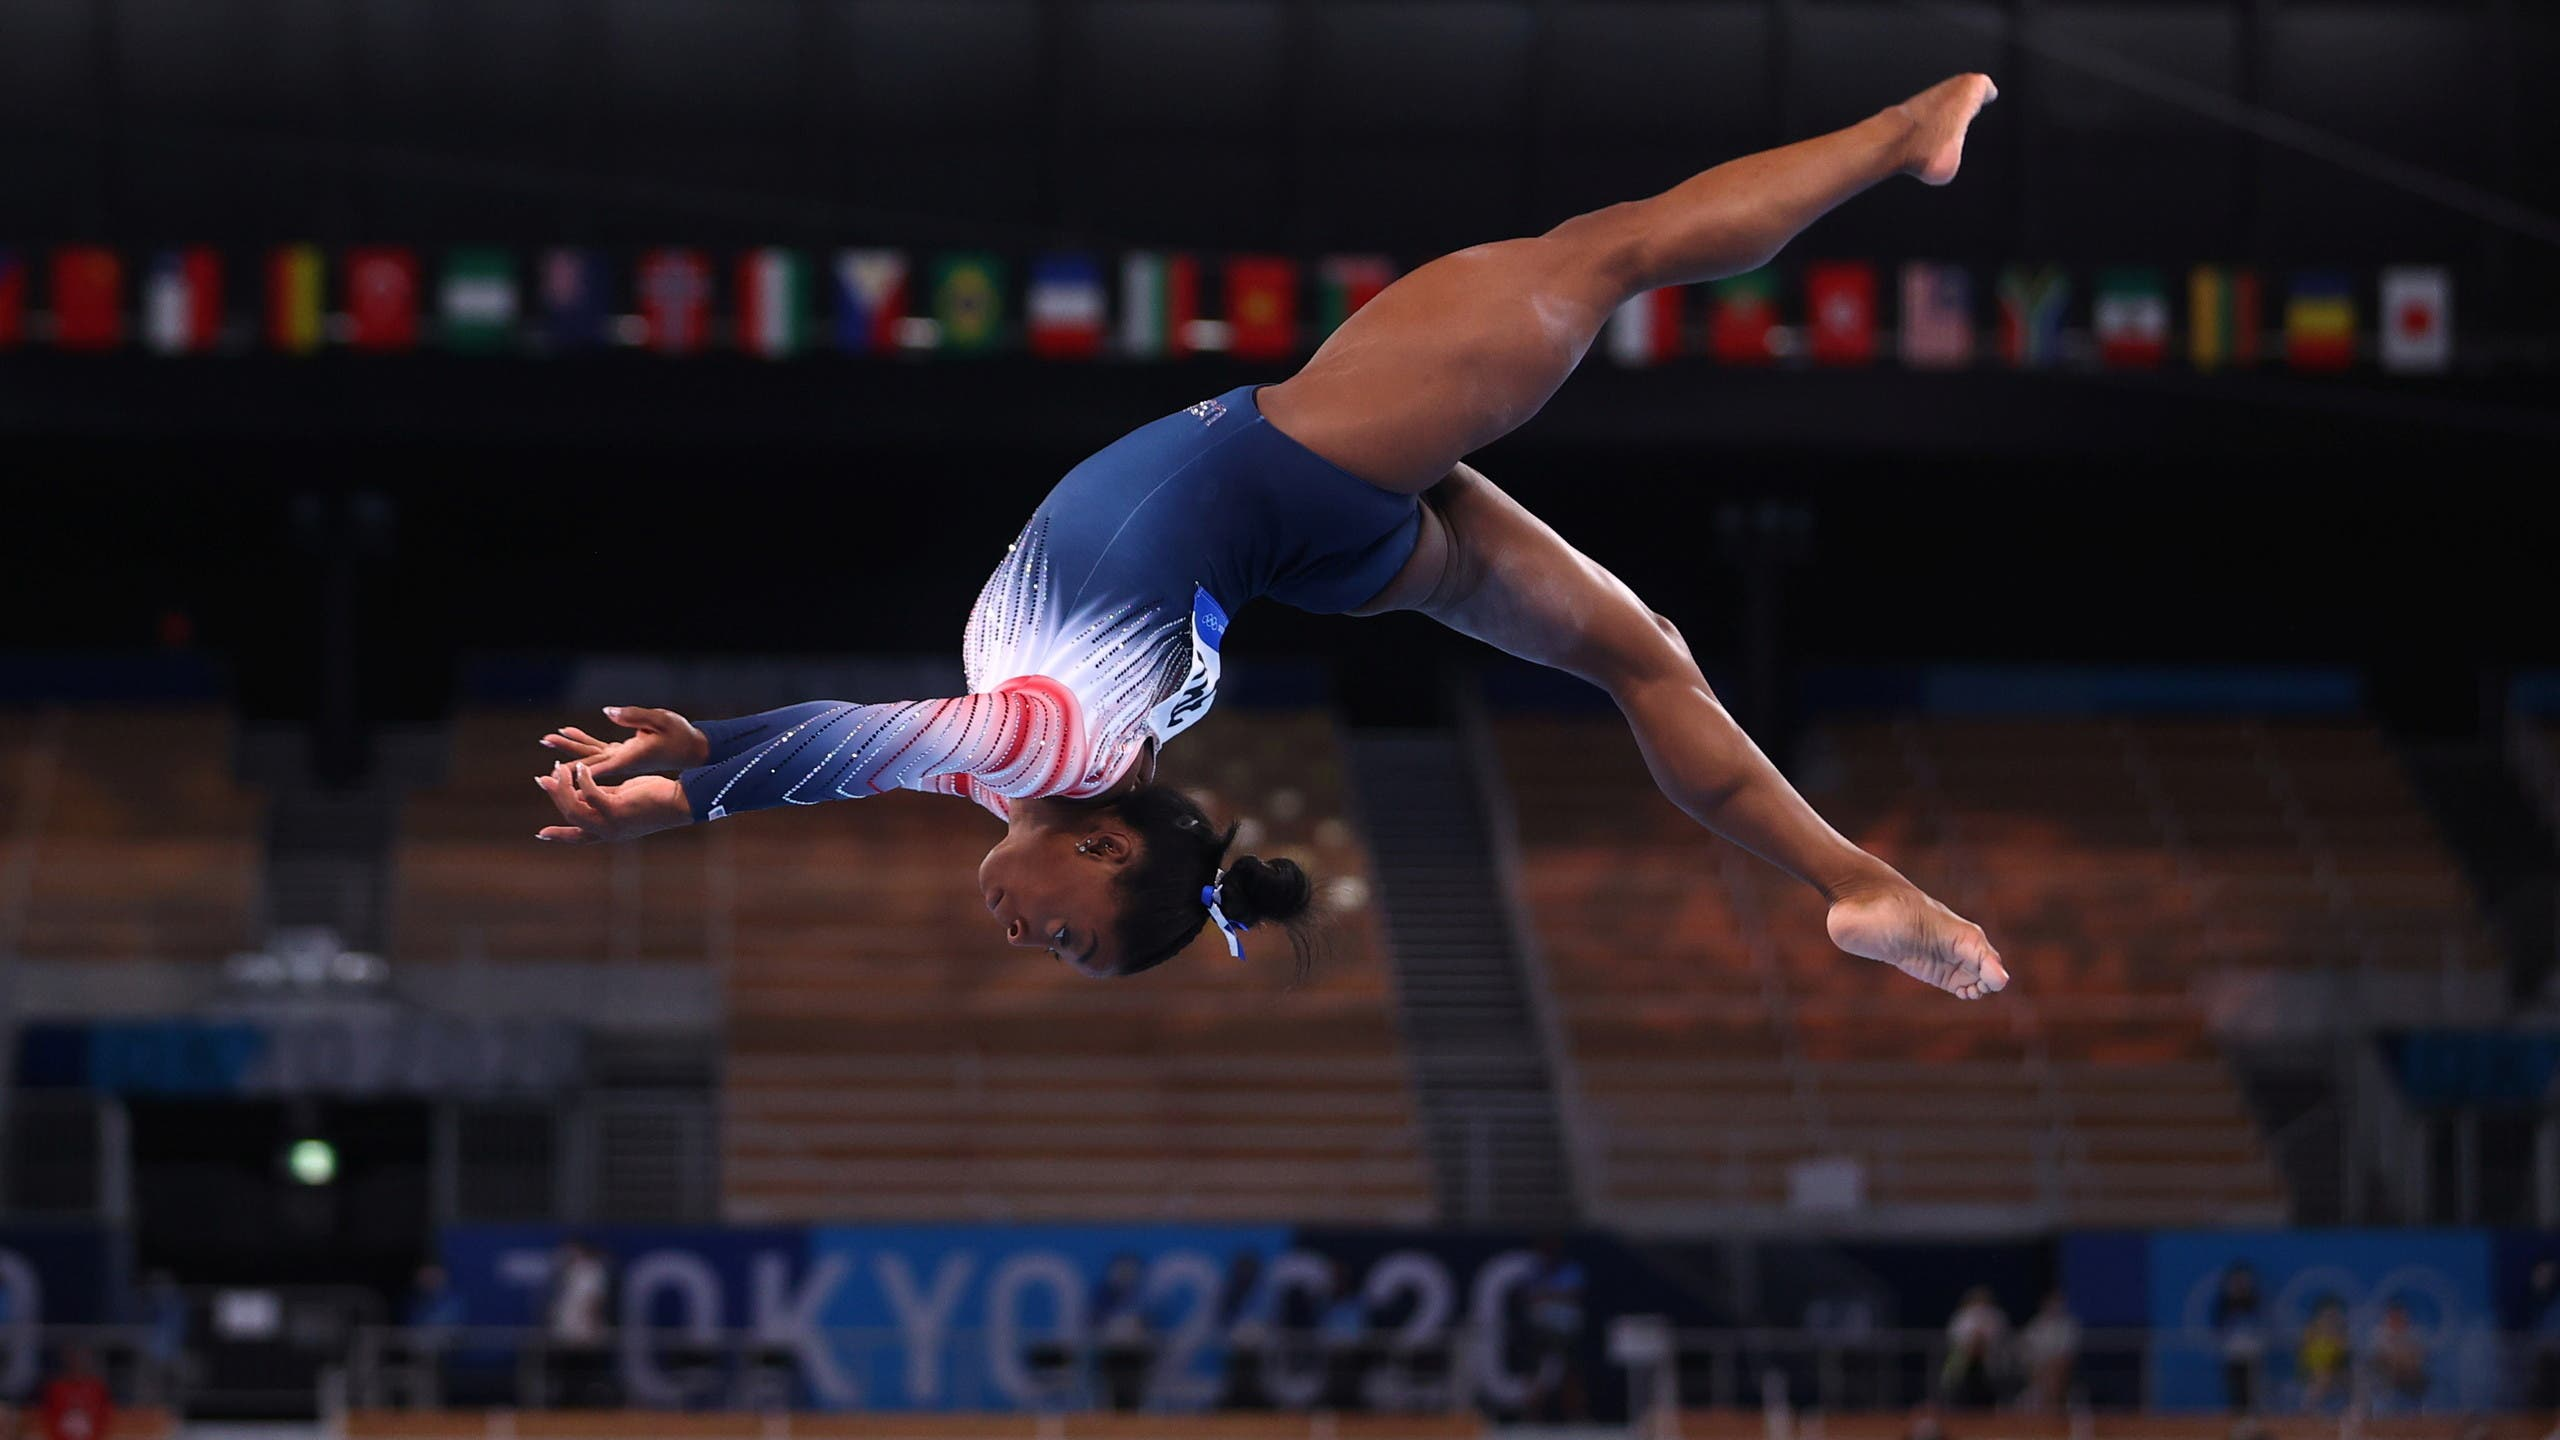 Simone Biles of the United States in action on the balance beam. (Reuters)